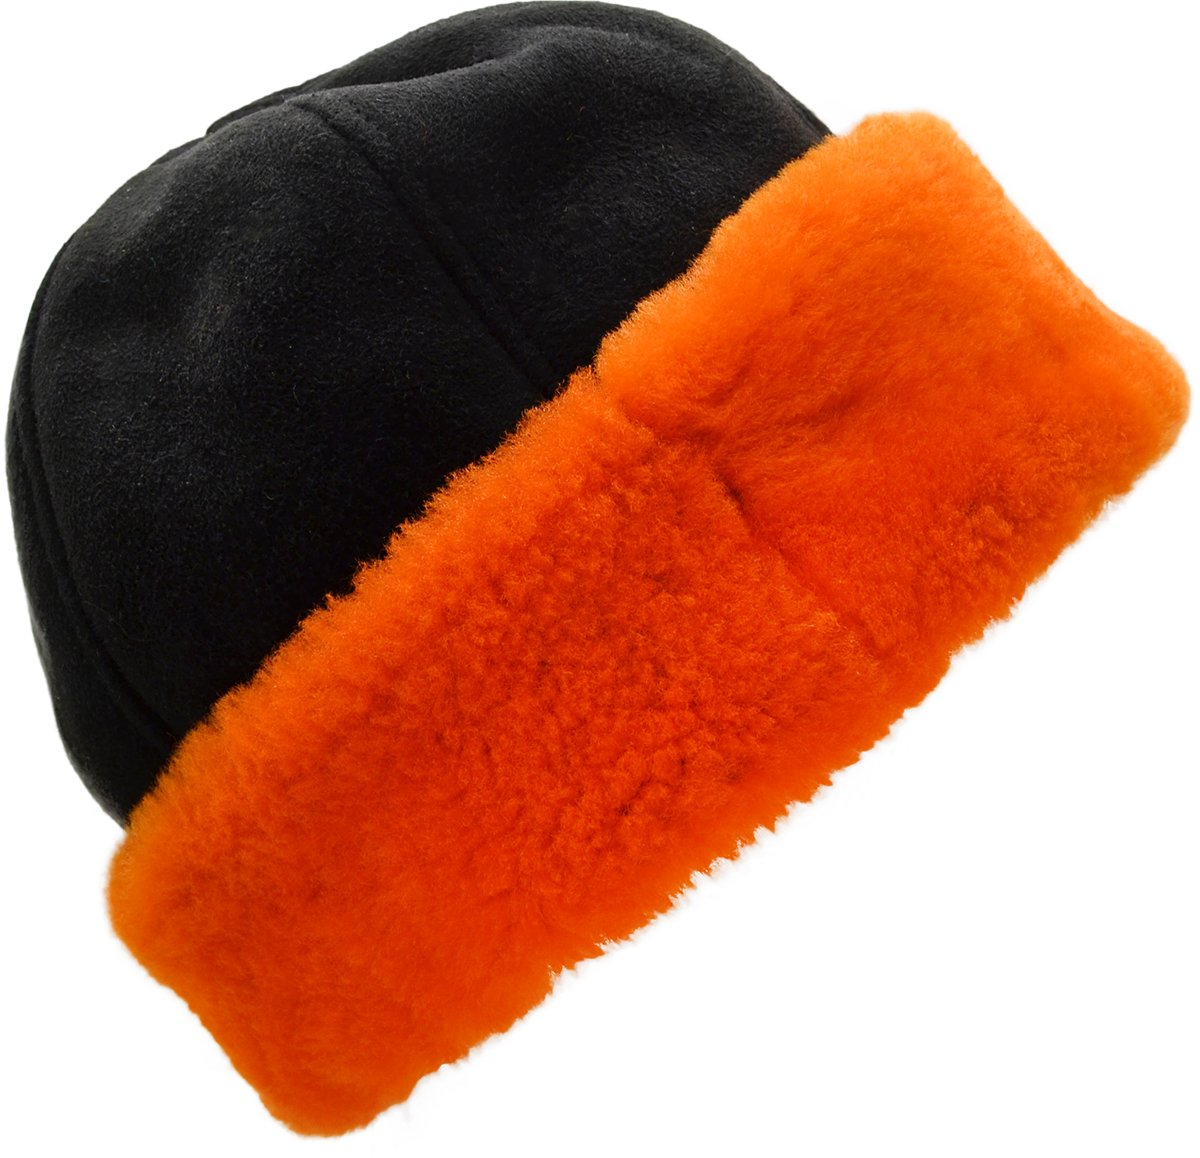 Surrell Womens SIX Section Cuff HAT Black Orange by Surrell